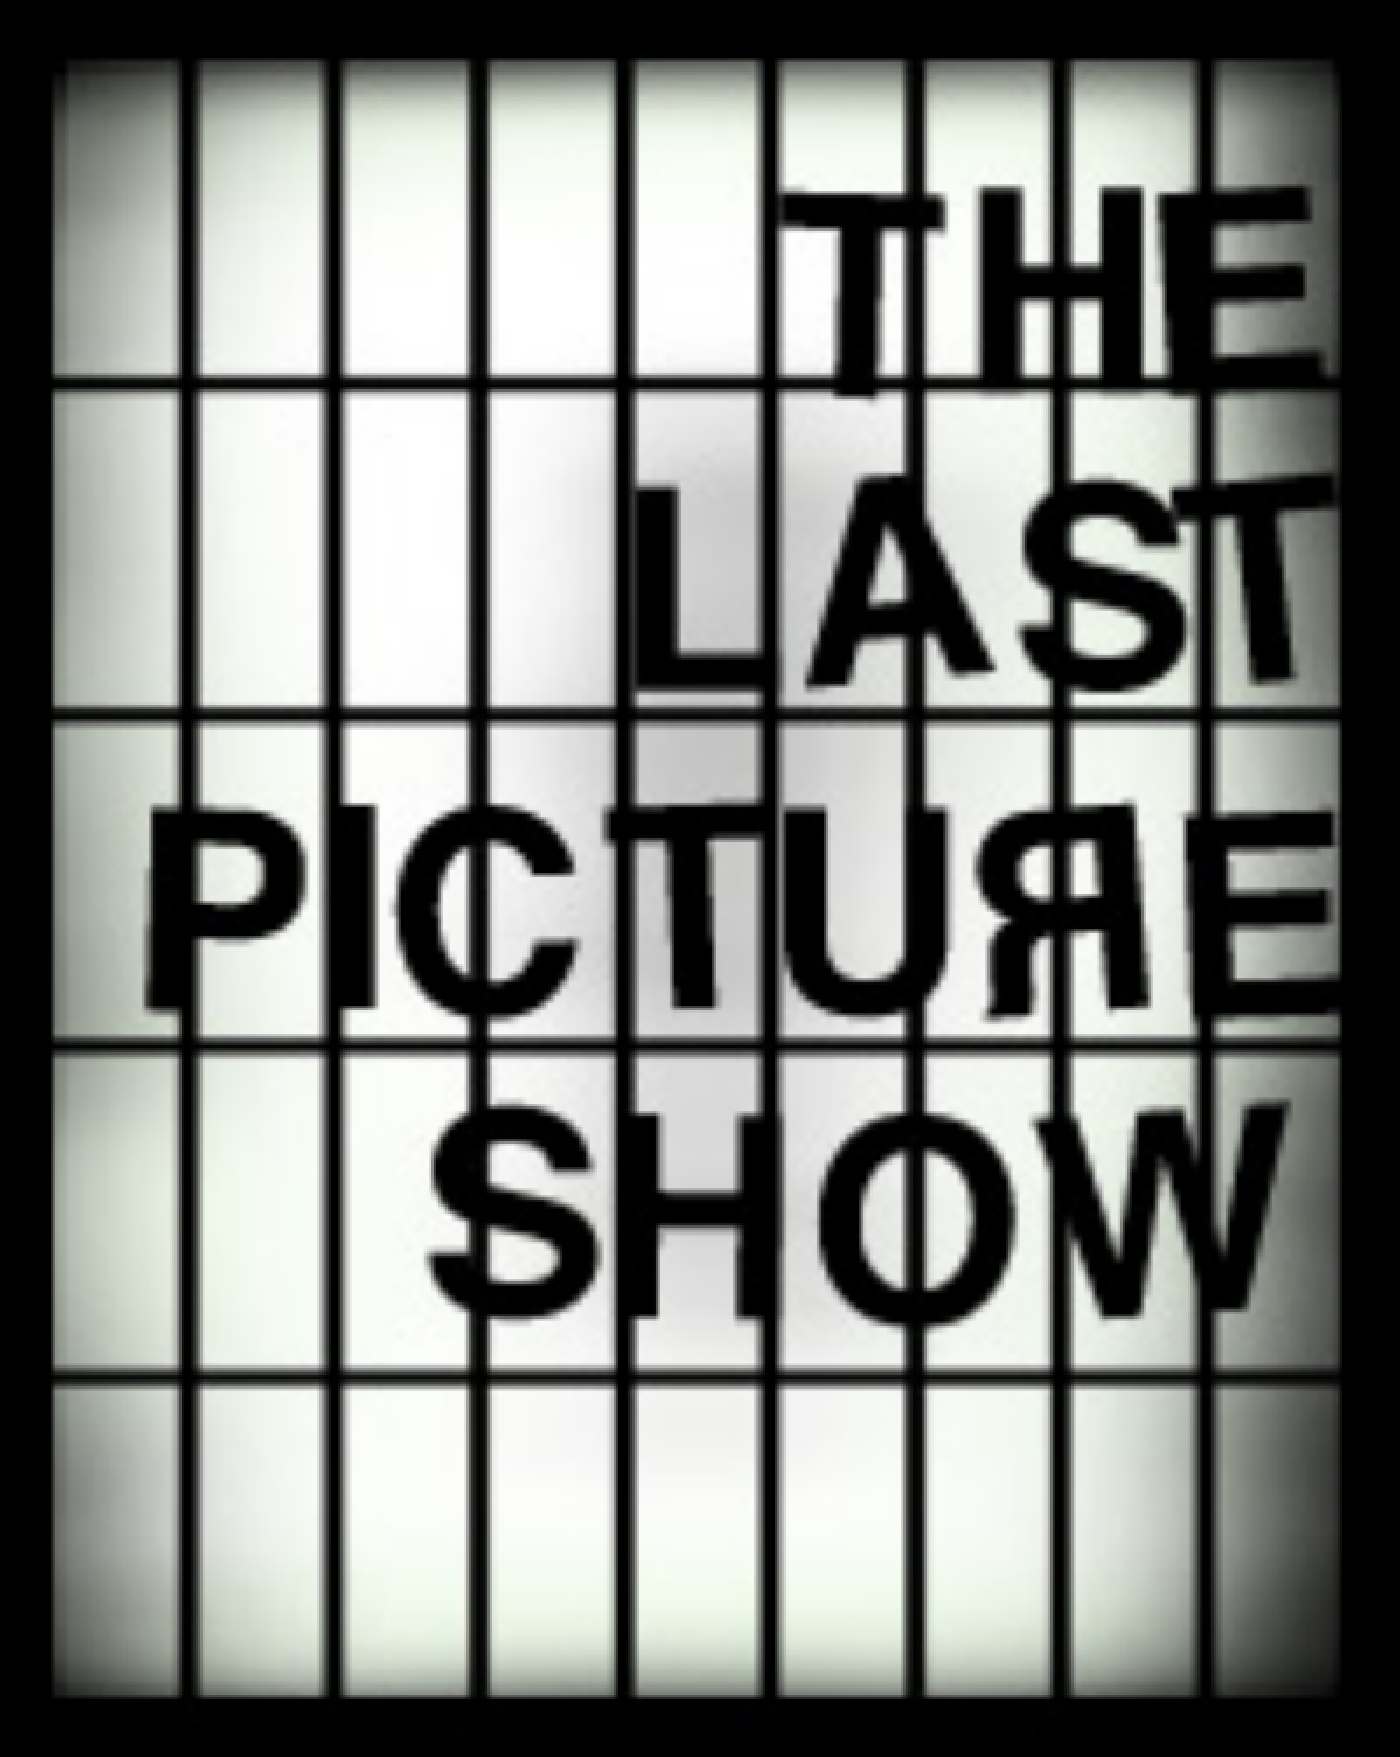 TheLastPictureShowPodcast